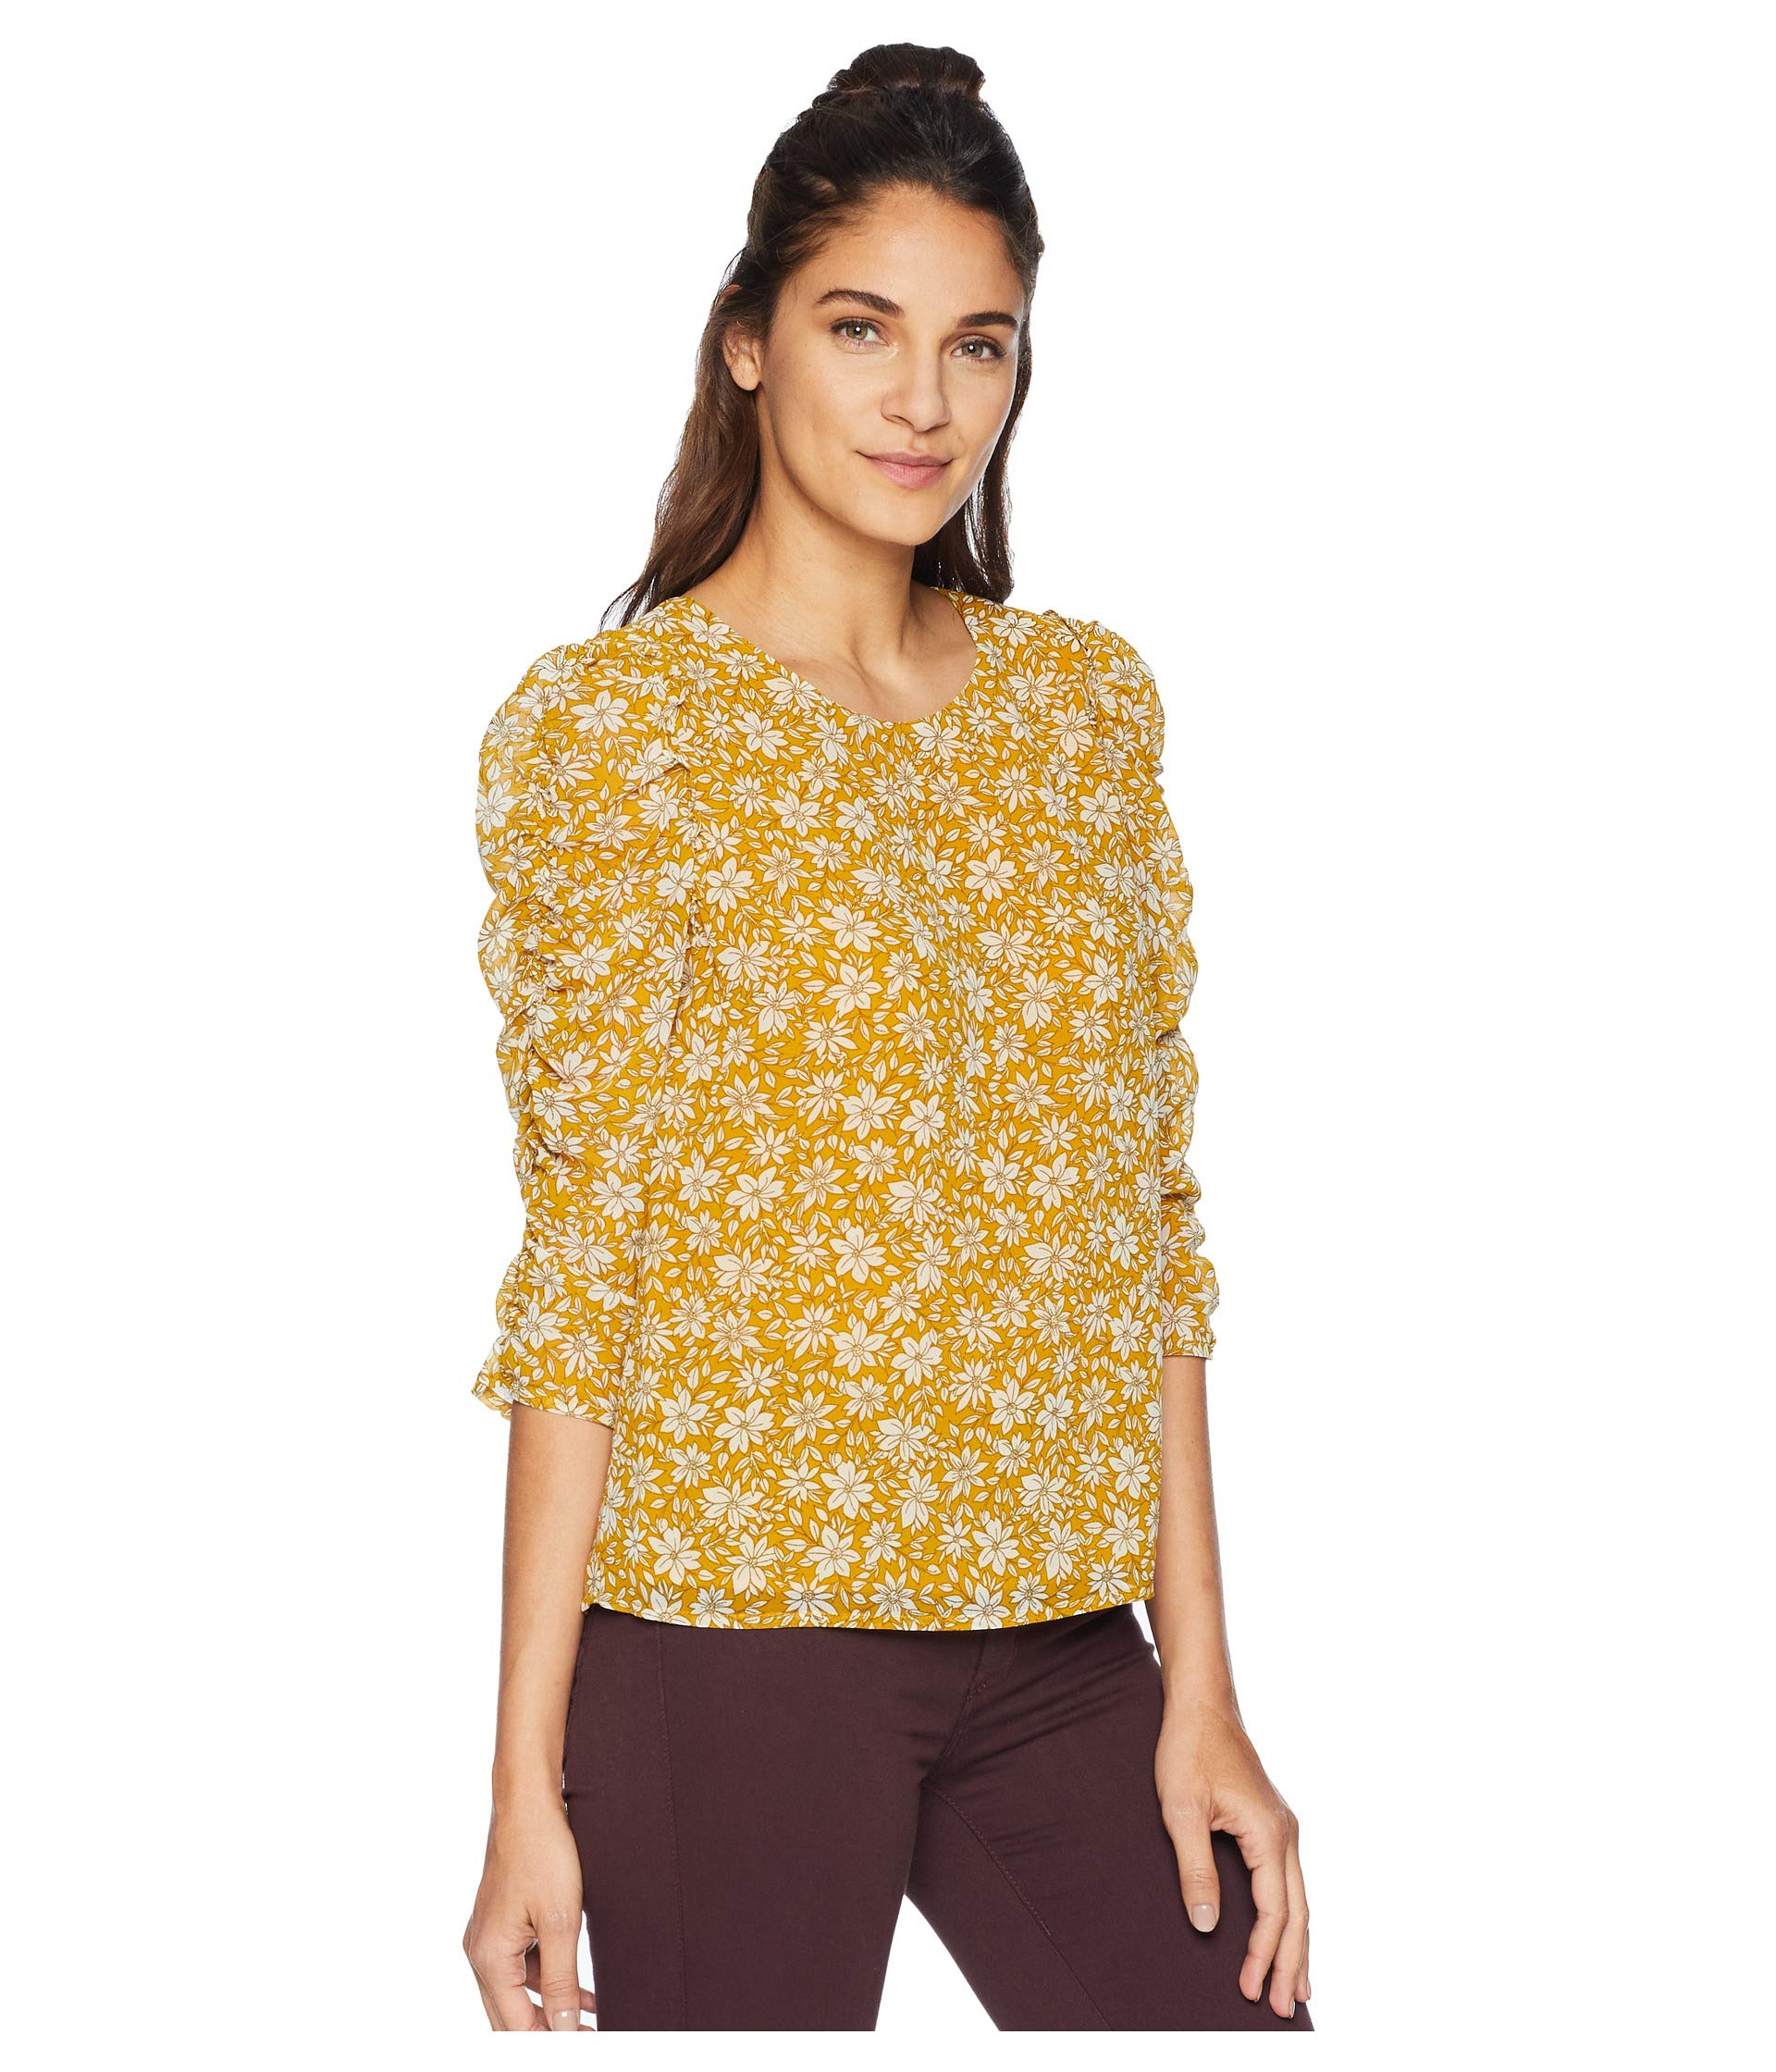 Blouse Ruched Sleeve Wild state Blooms 1 Pot Honey qaR11X